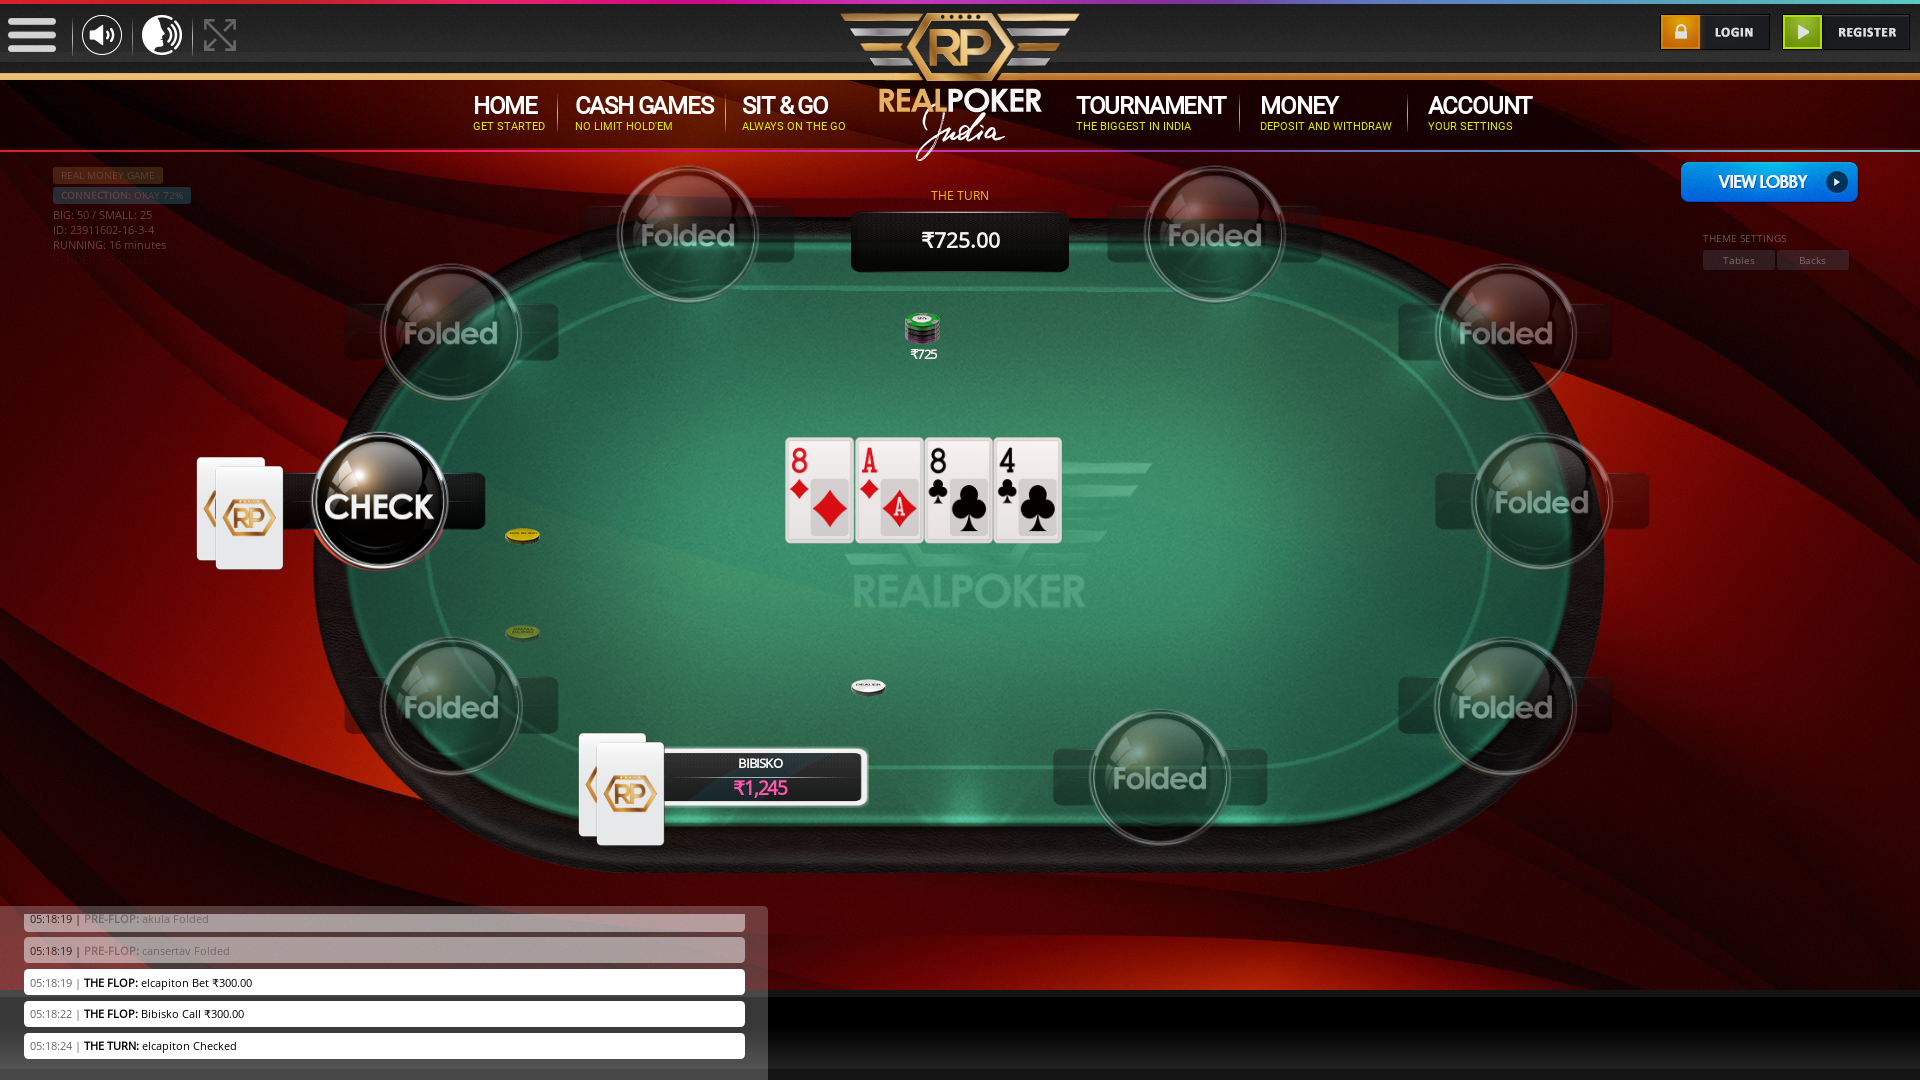 indian poker on a 10 player table in the 16th minute